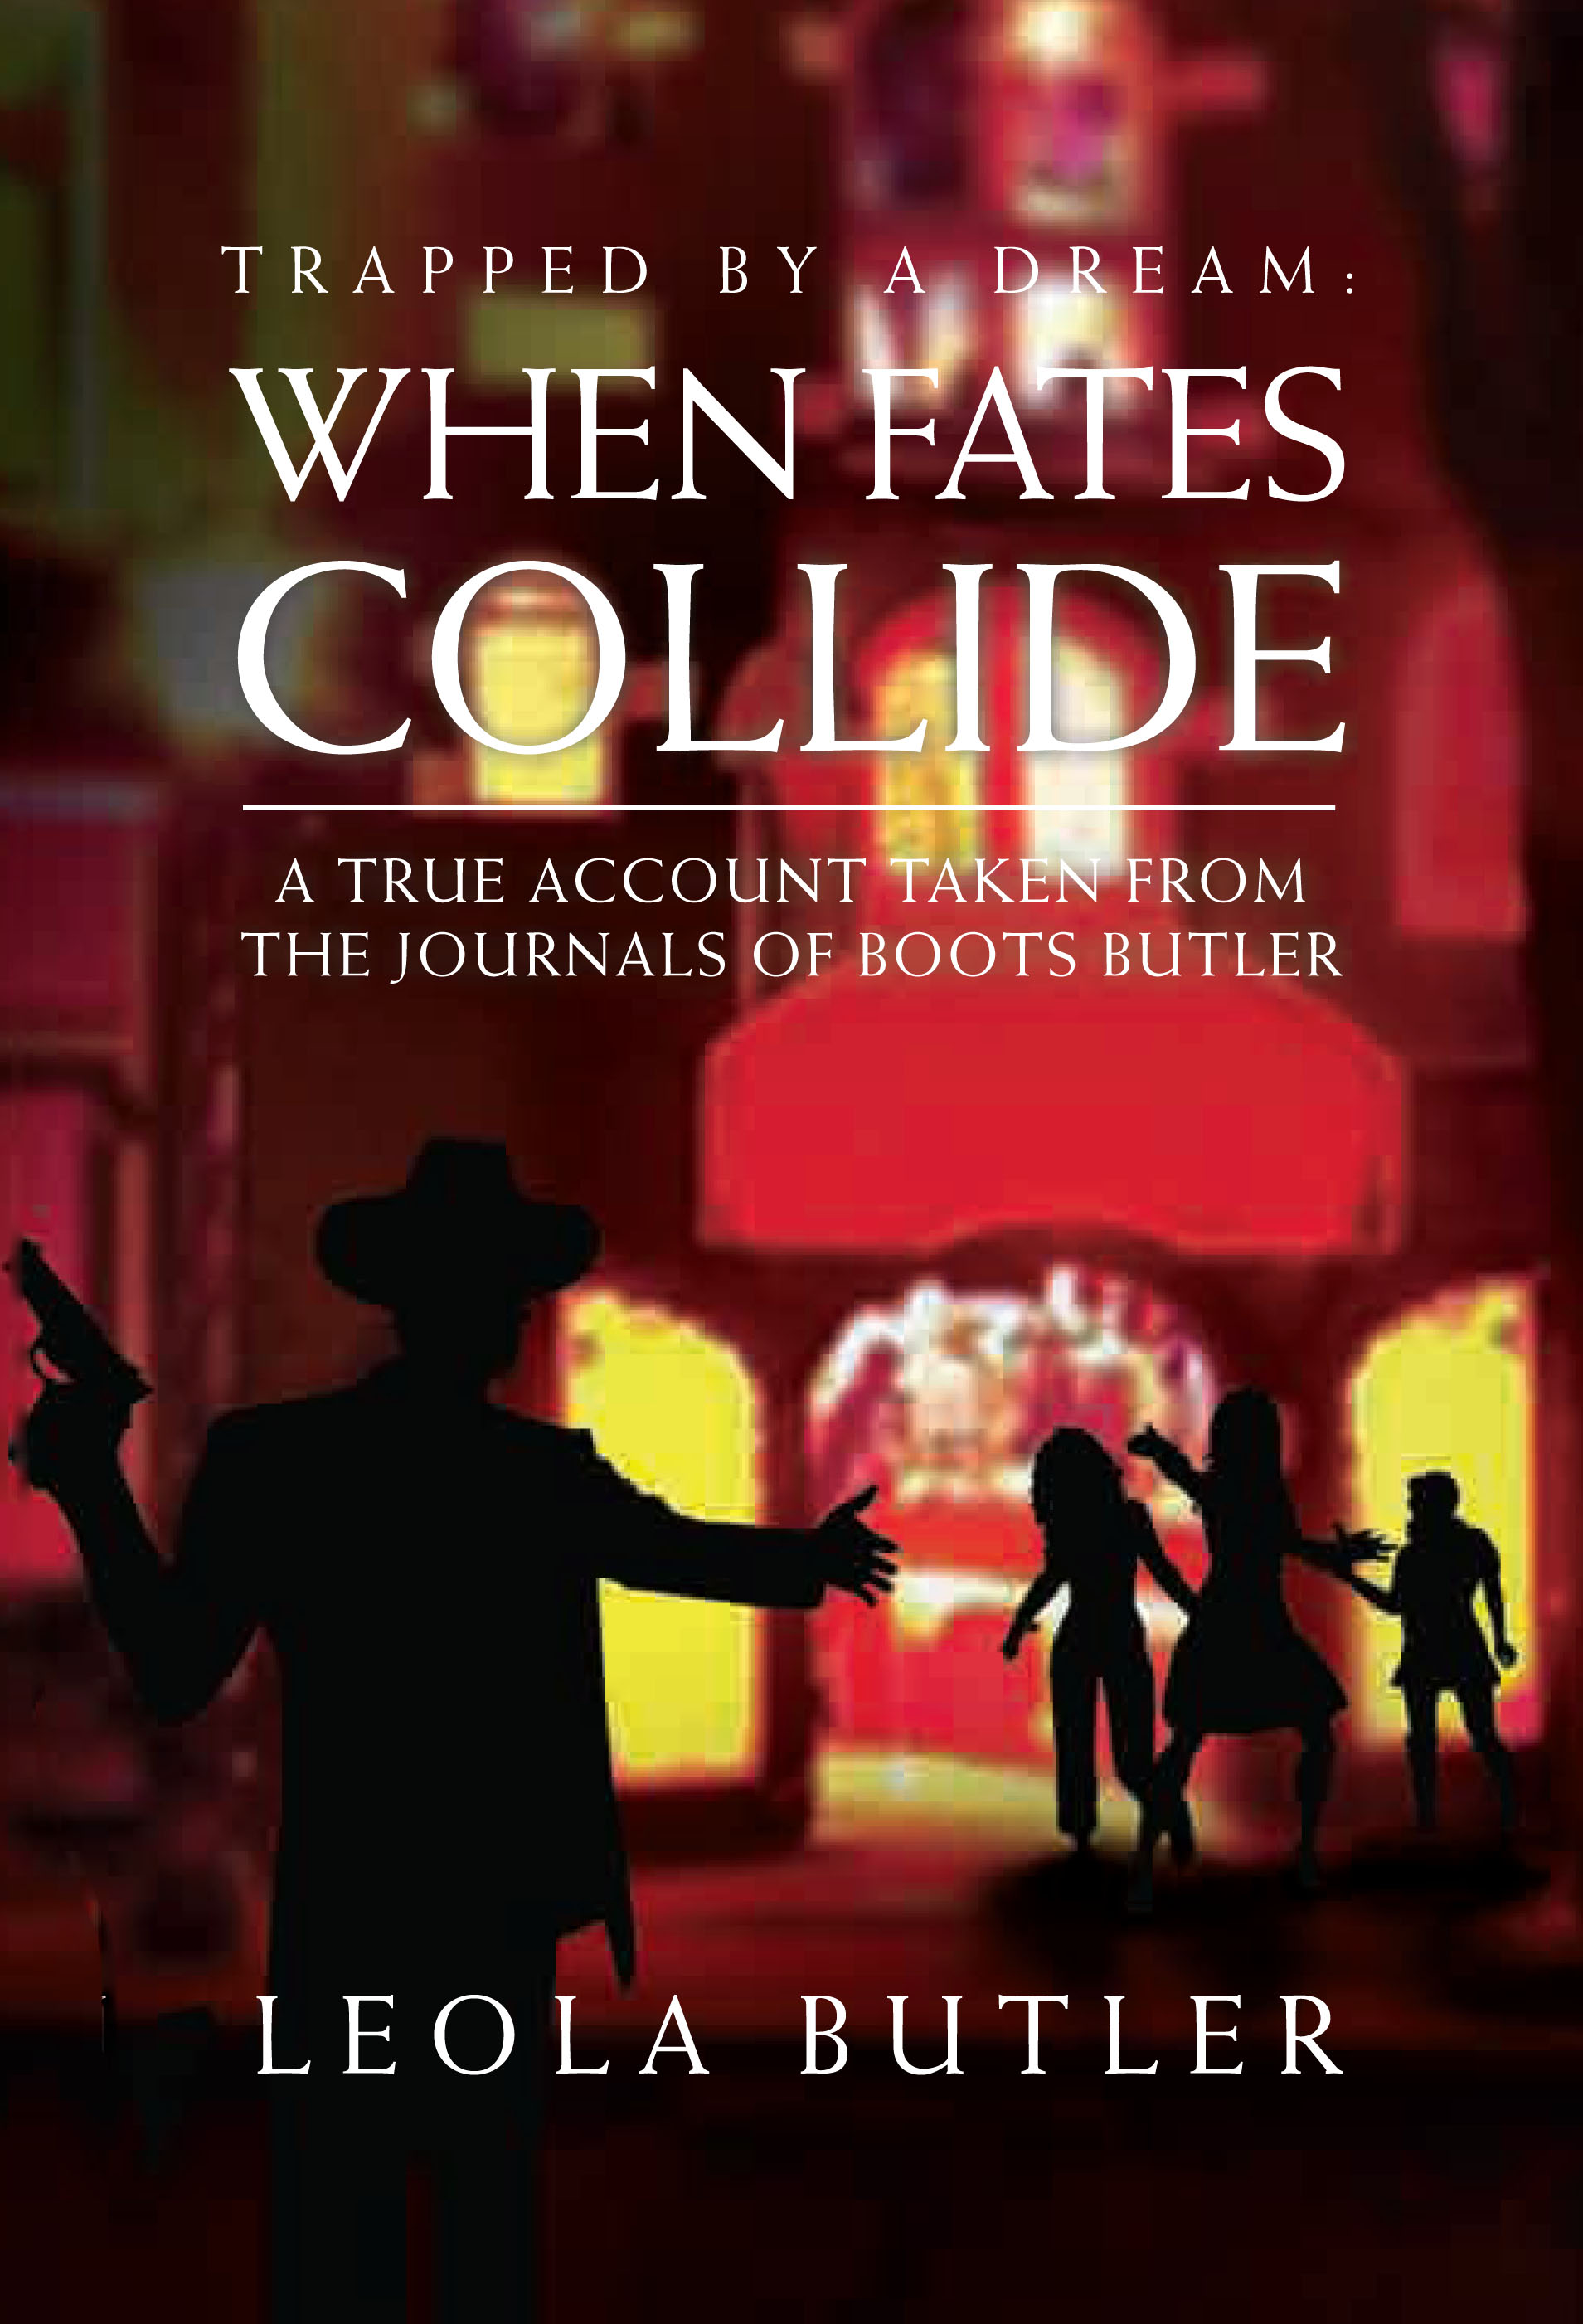 Trapped By A Dream: When Fates Collide